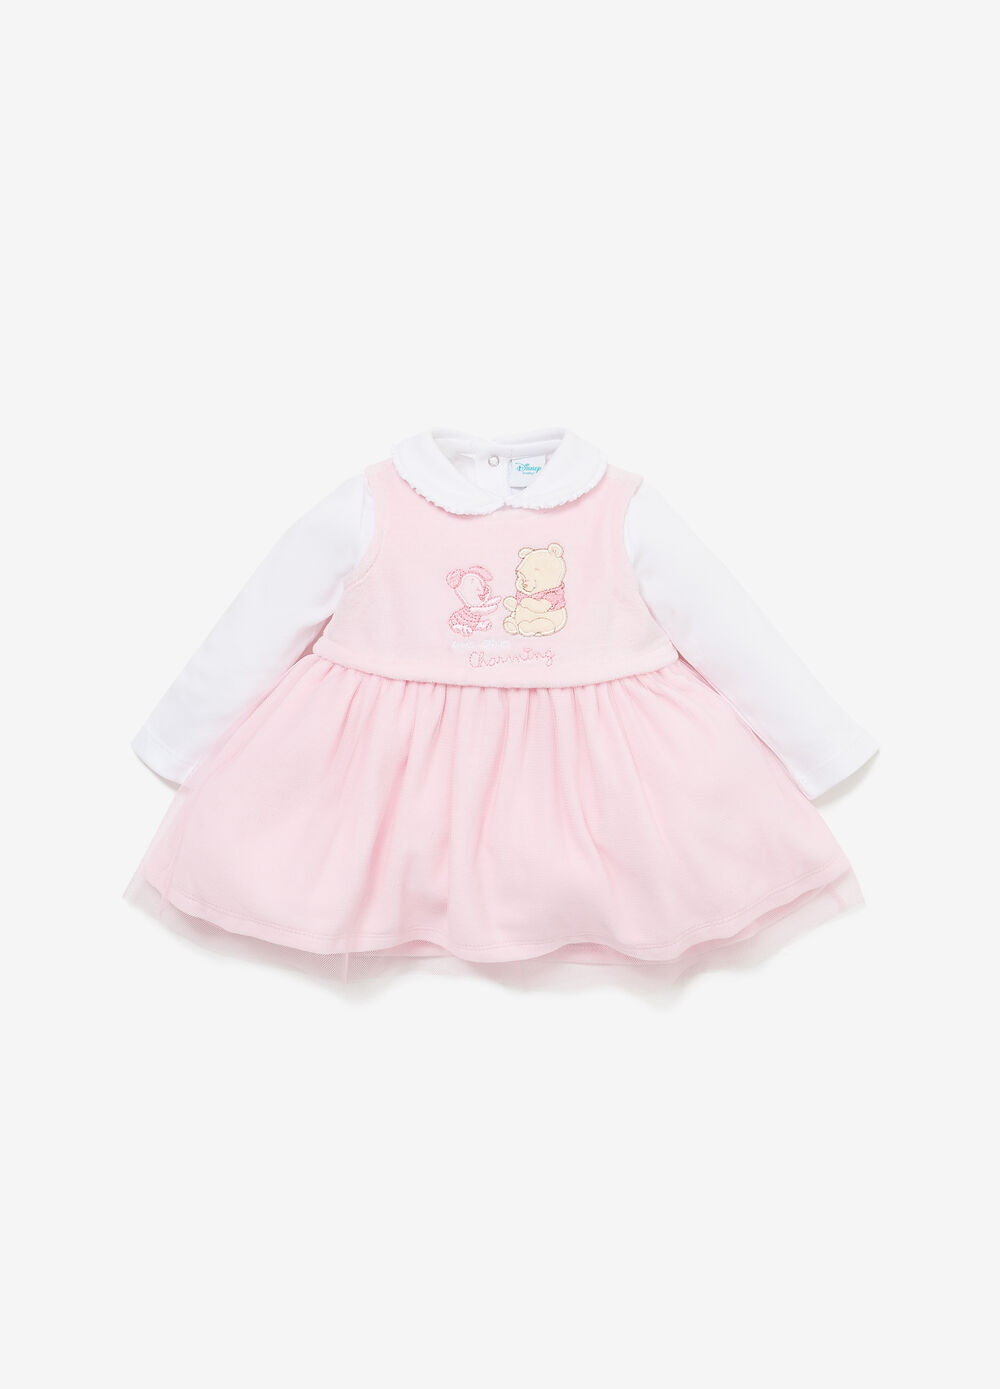 Winnie the Pooh tulle outfit